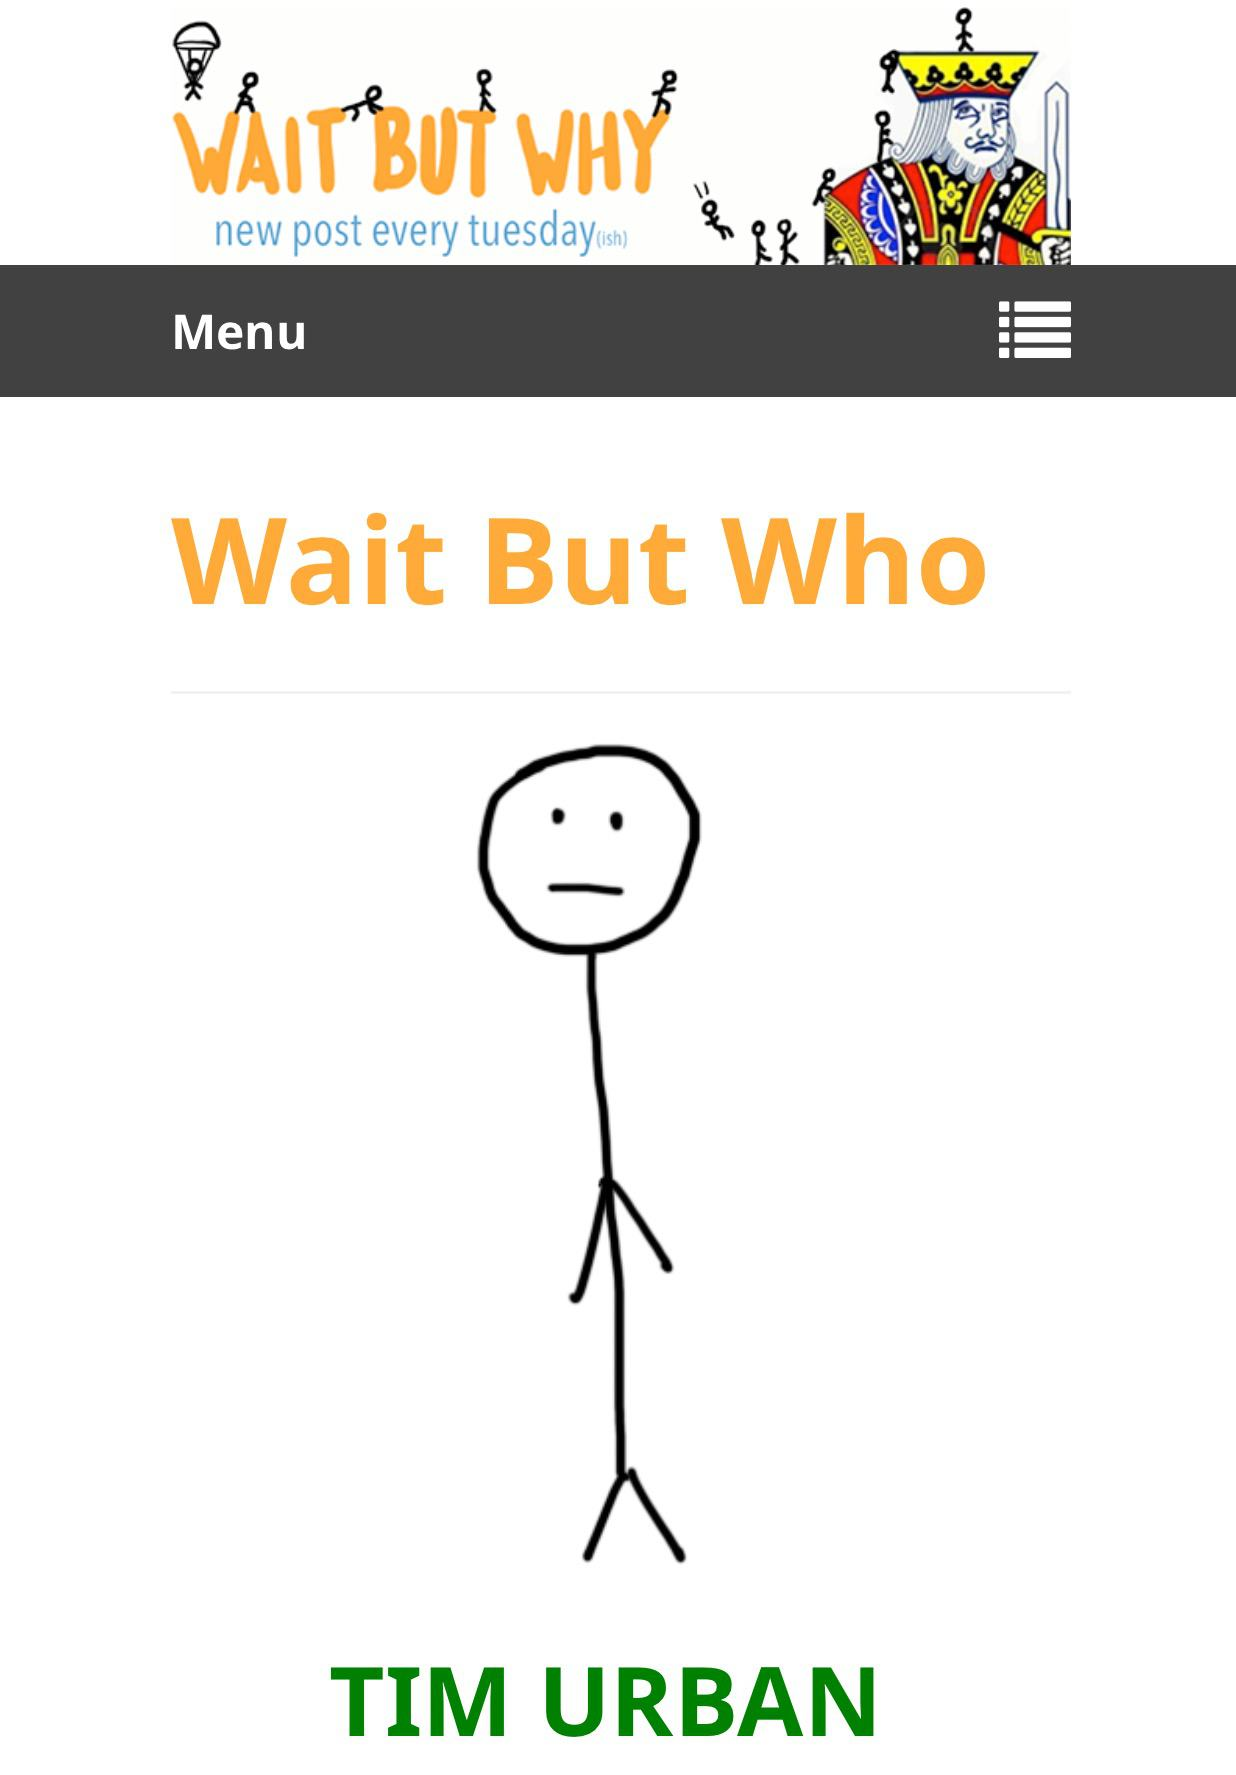 WaitButWhy.com (website)